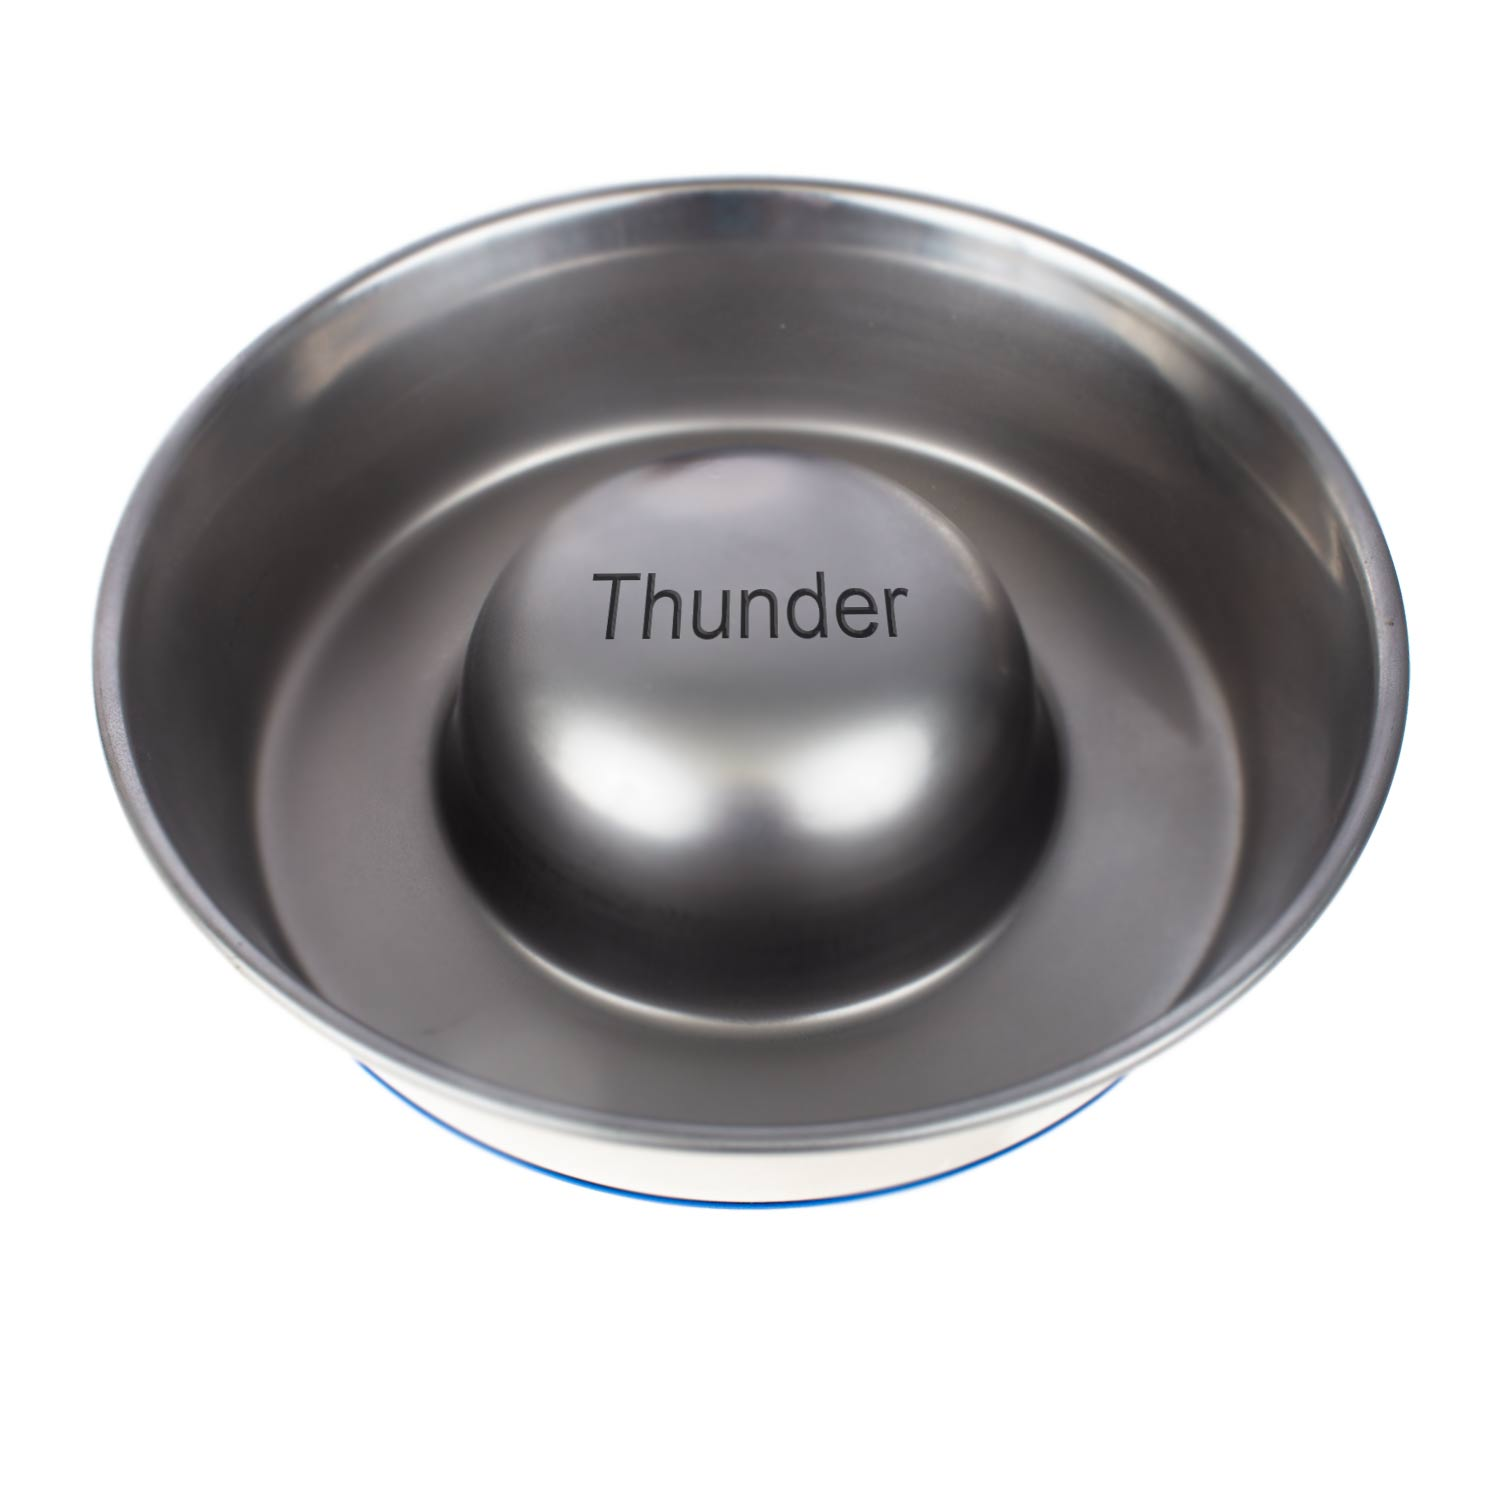 Stainless Steel Bowl Slow feeder large